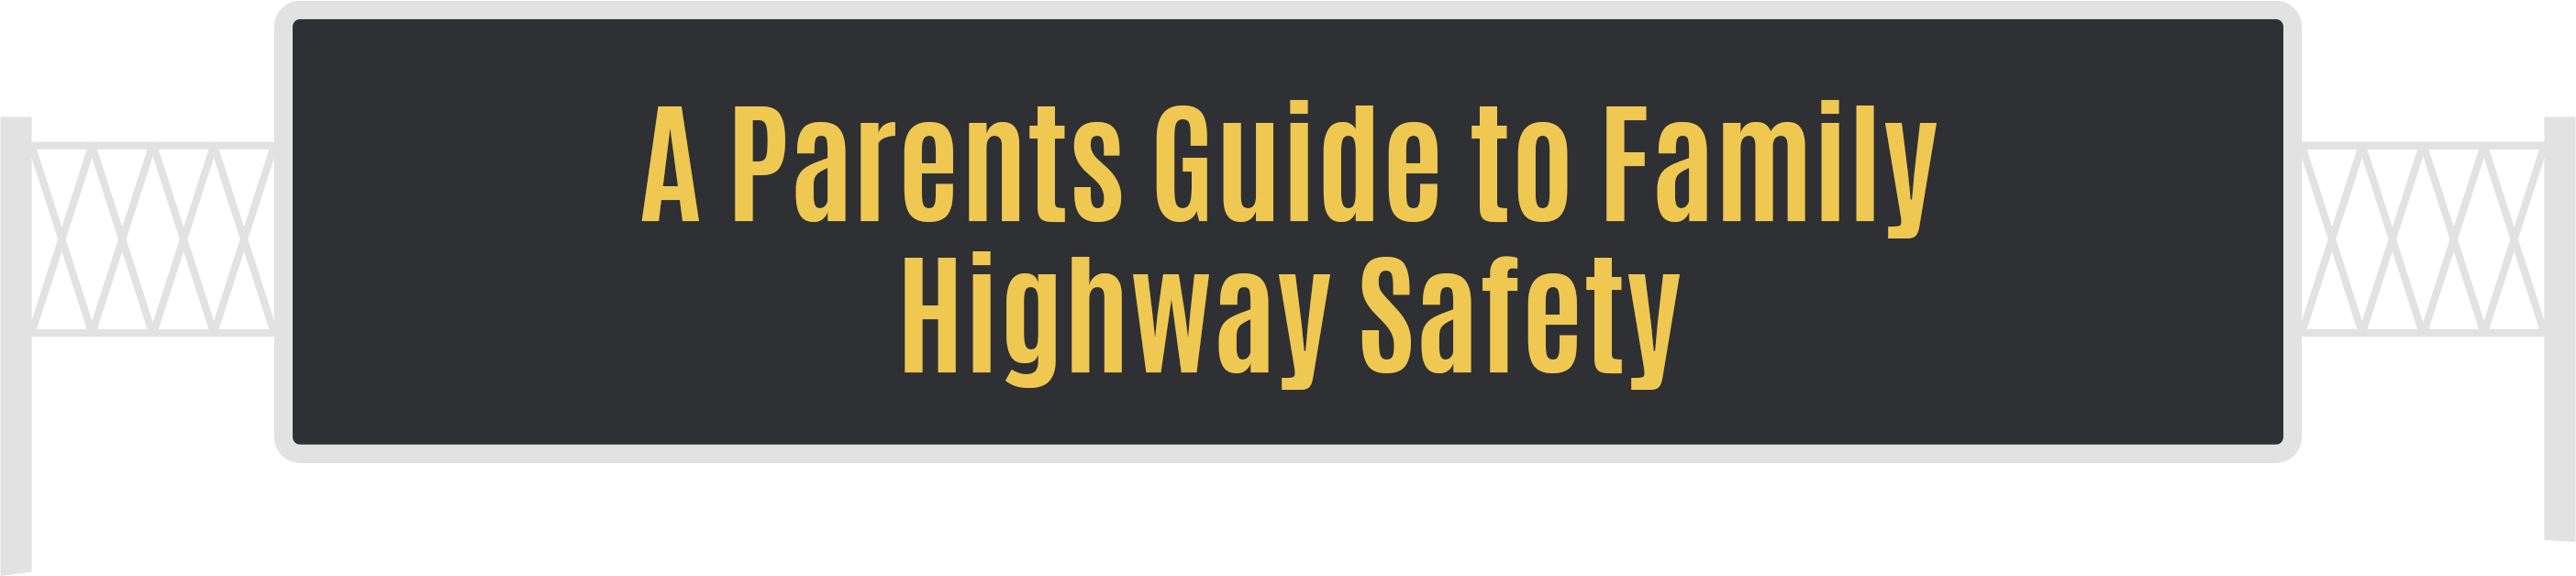 A Parents Guide to Family Highway Safety